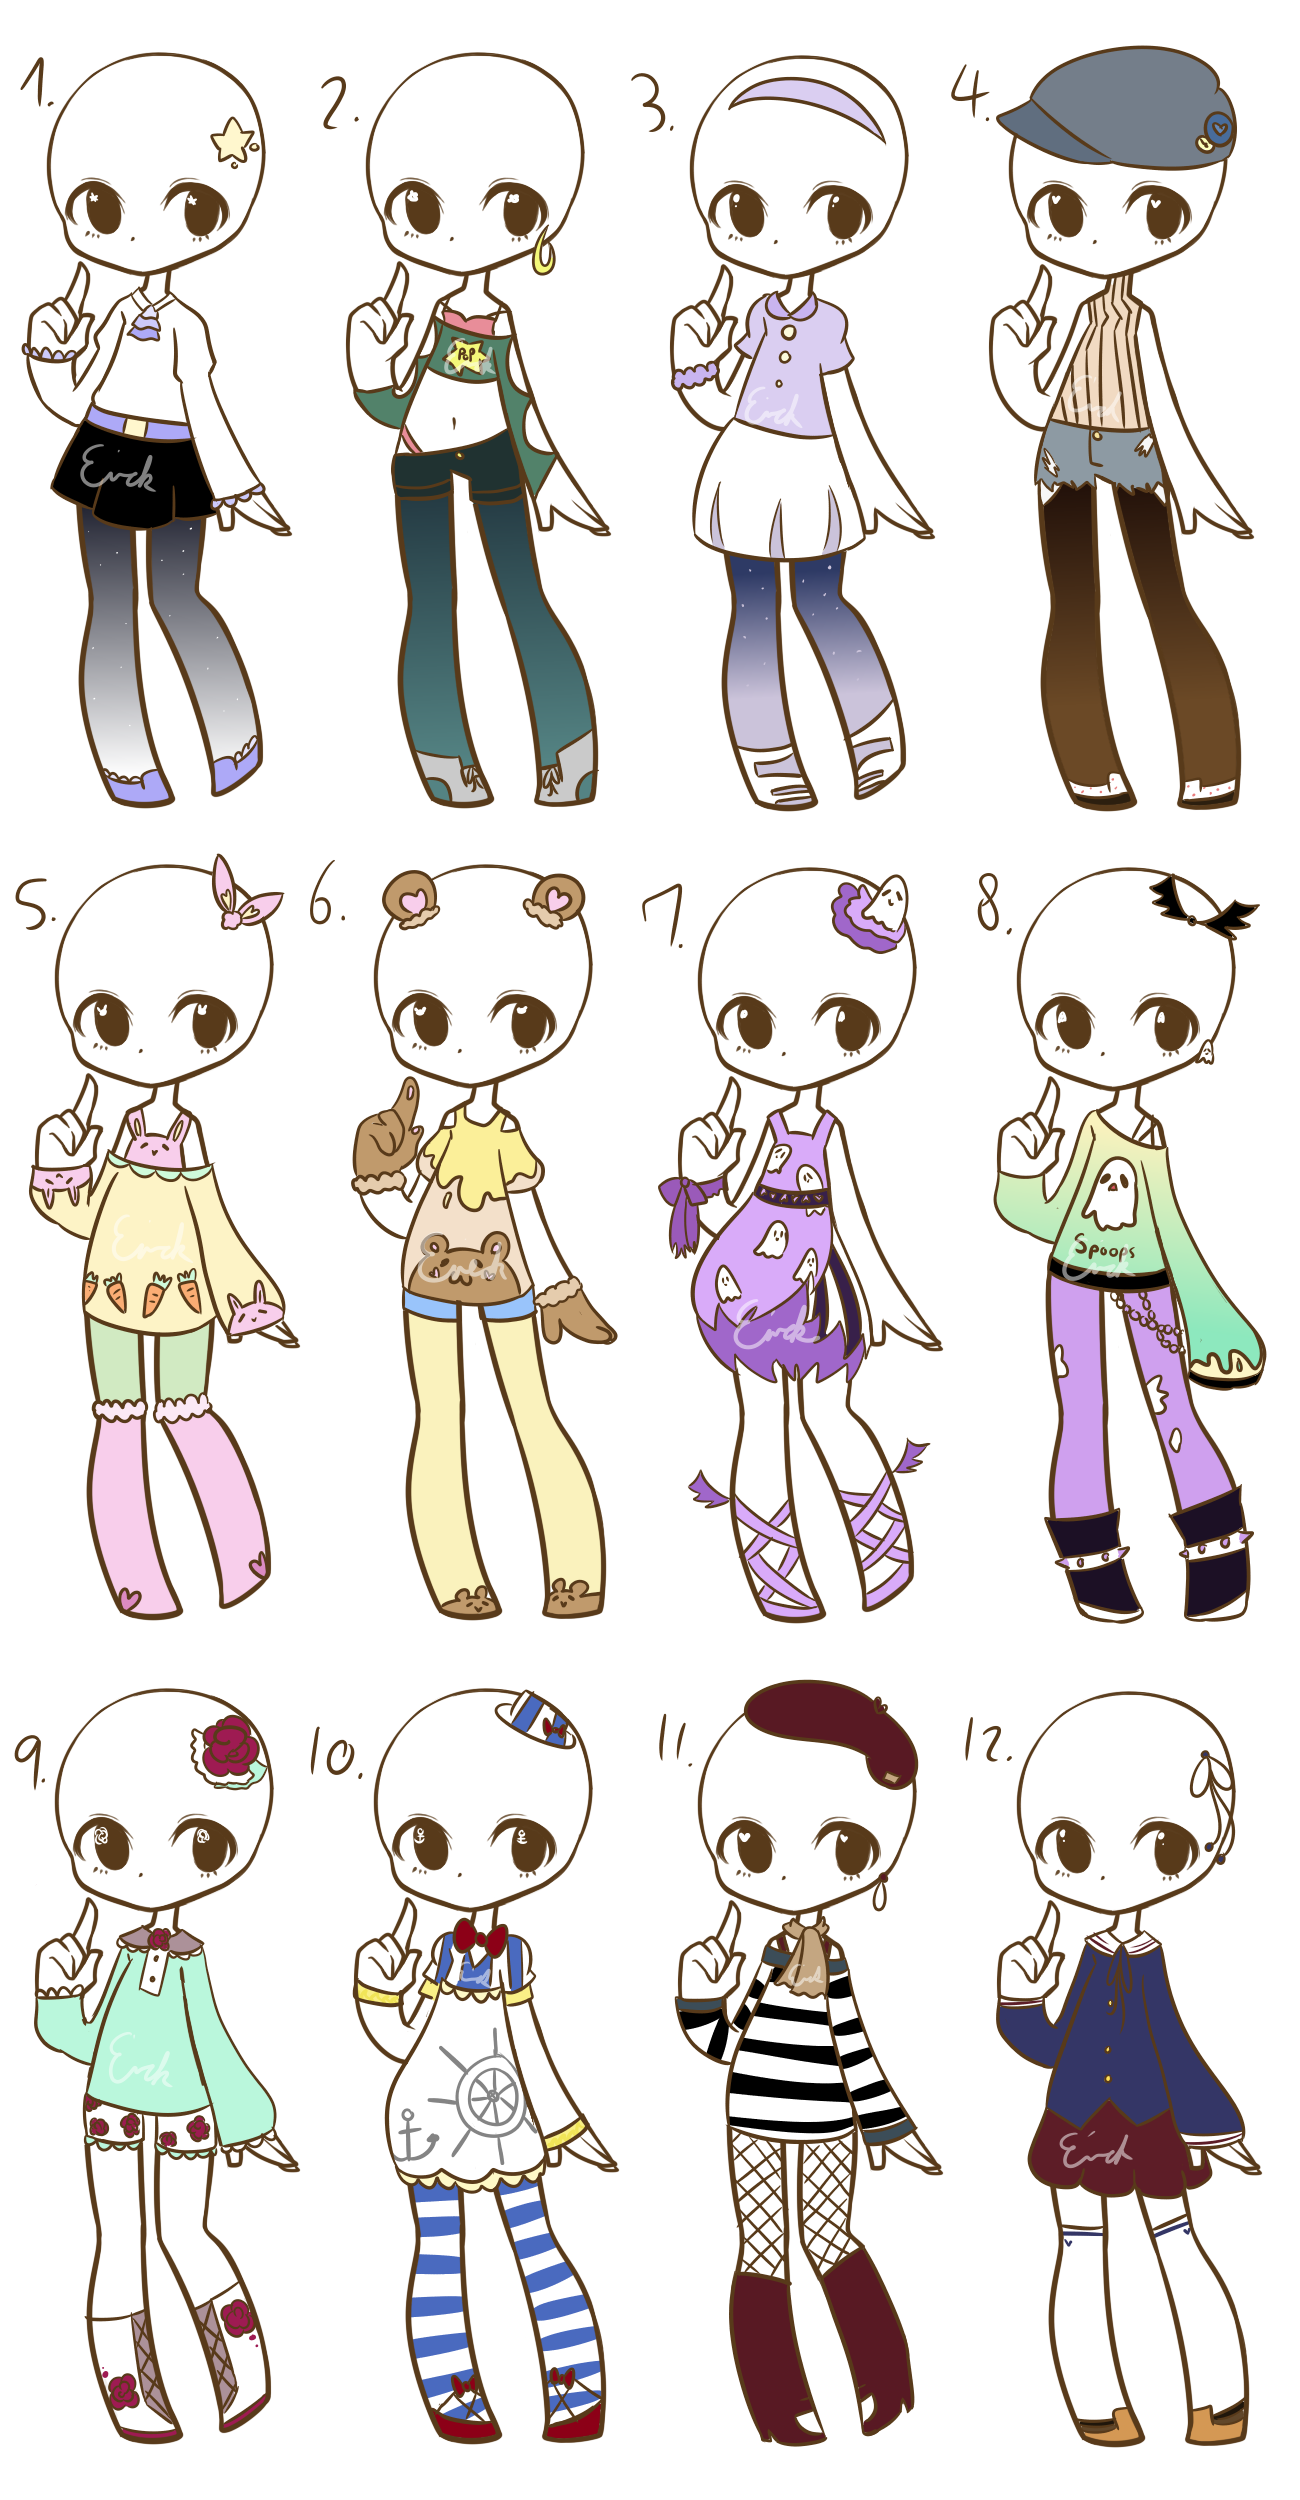 Outfit Ideas: Cute Oc Outfit Ideas